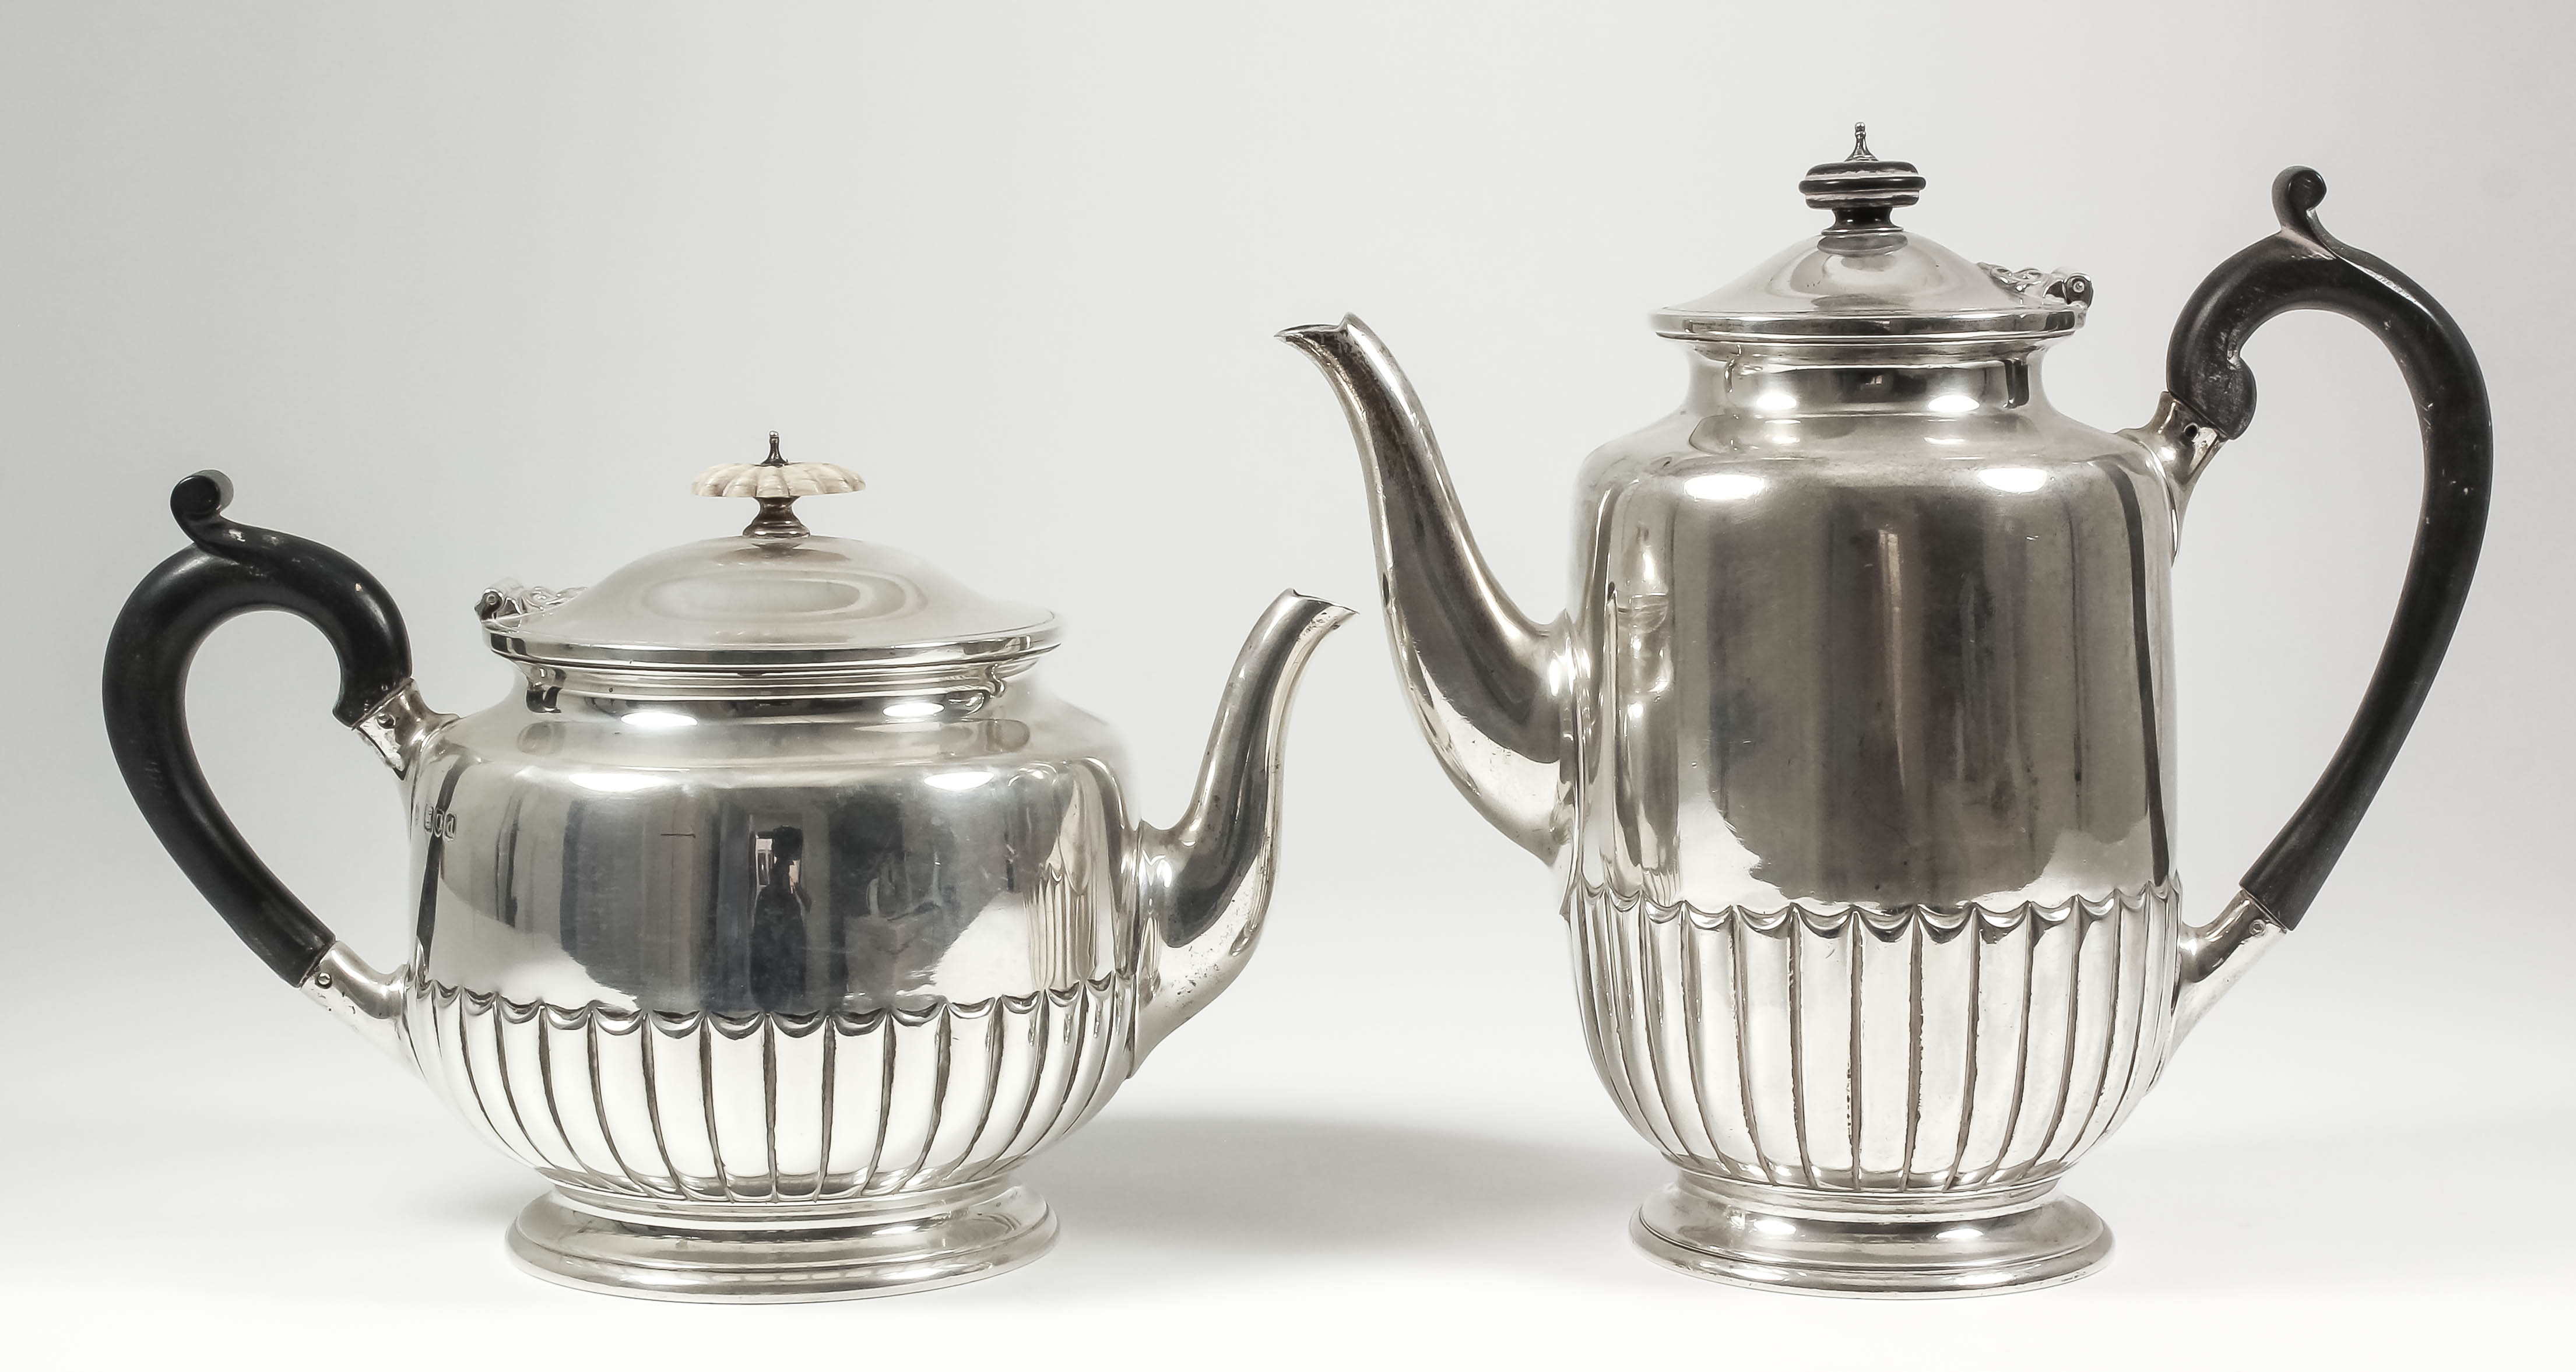 Lot 5 - A late Victorian silver cylindrical teapot and coffee pot with slightly domed covers, part reeded